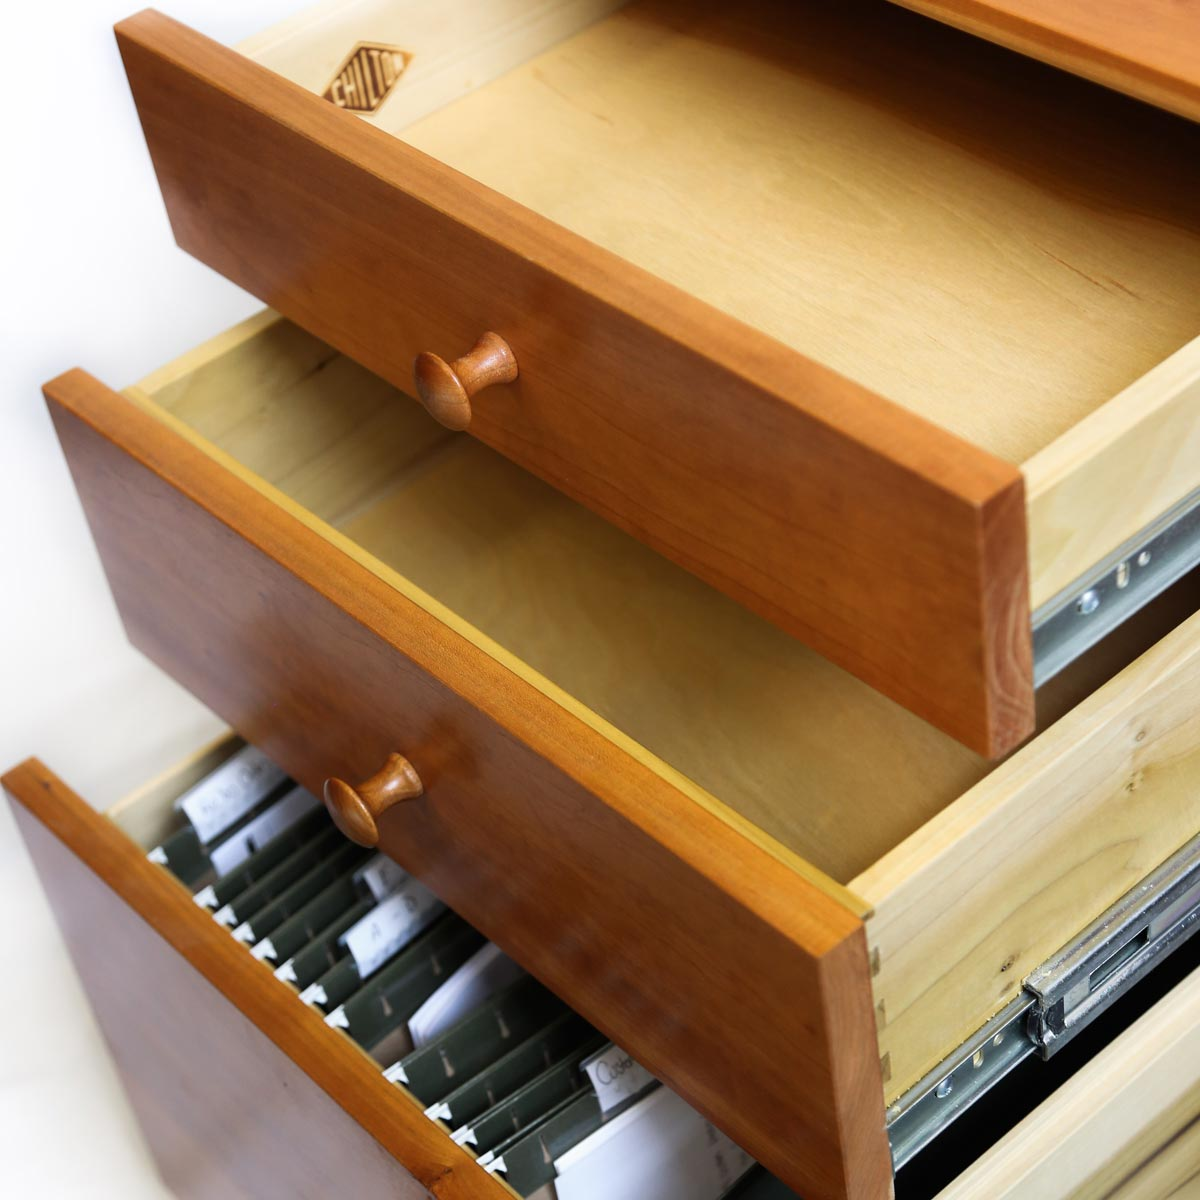 Three opened desk drawers holding files